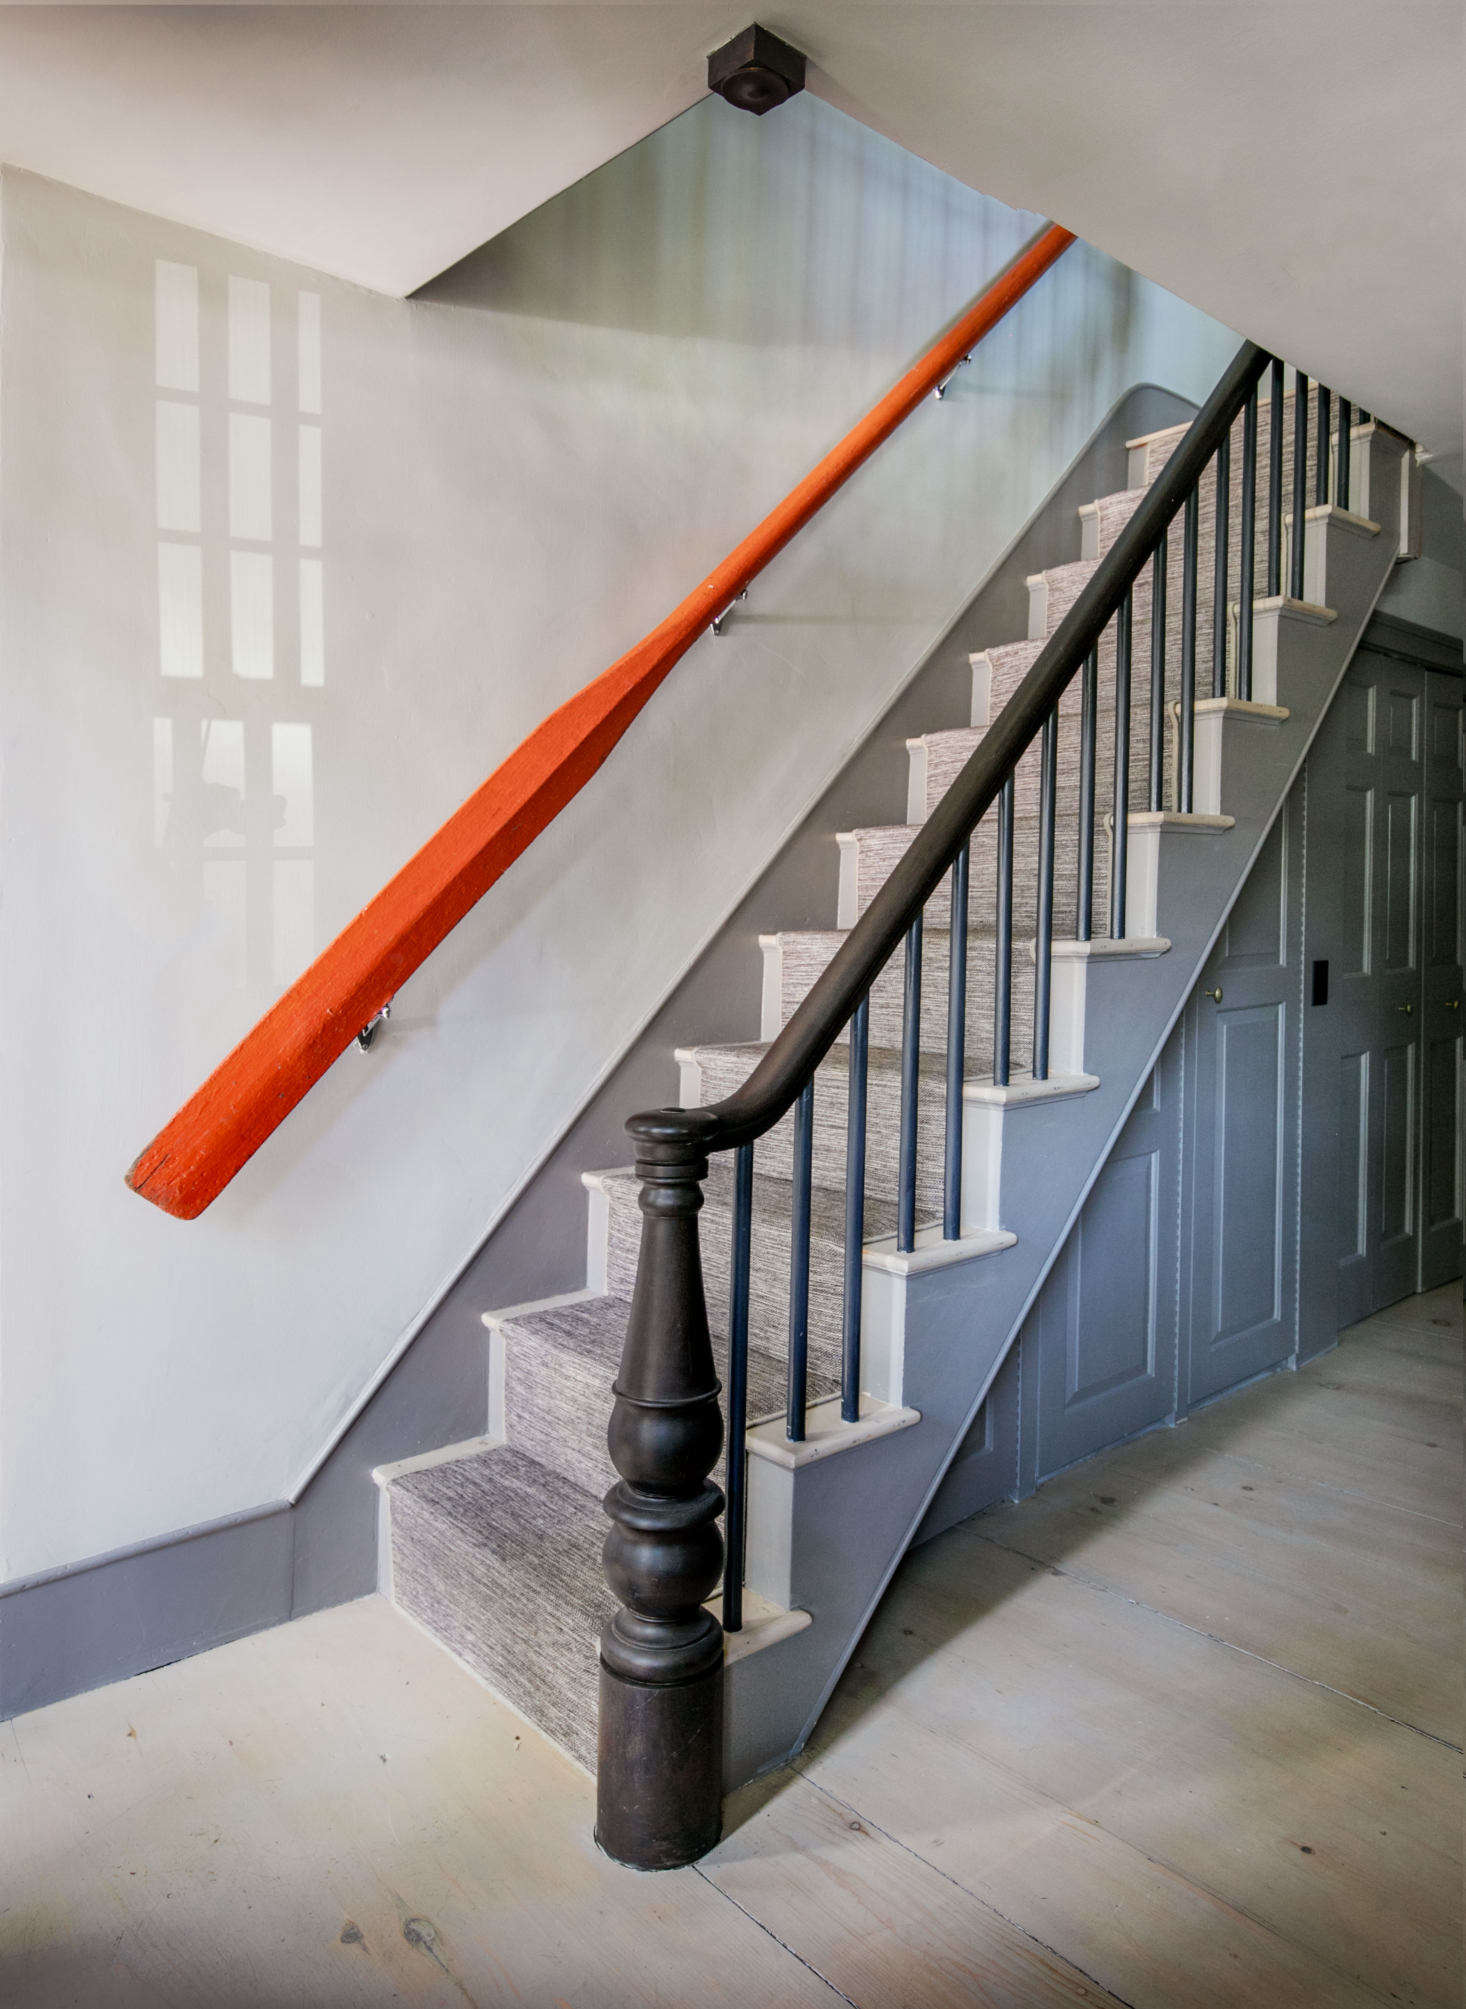 Philip and Kristin mounted an oar as handrail, adding a dash of color to the entryway.